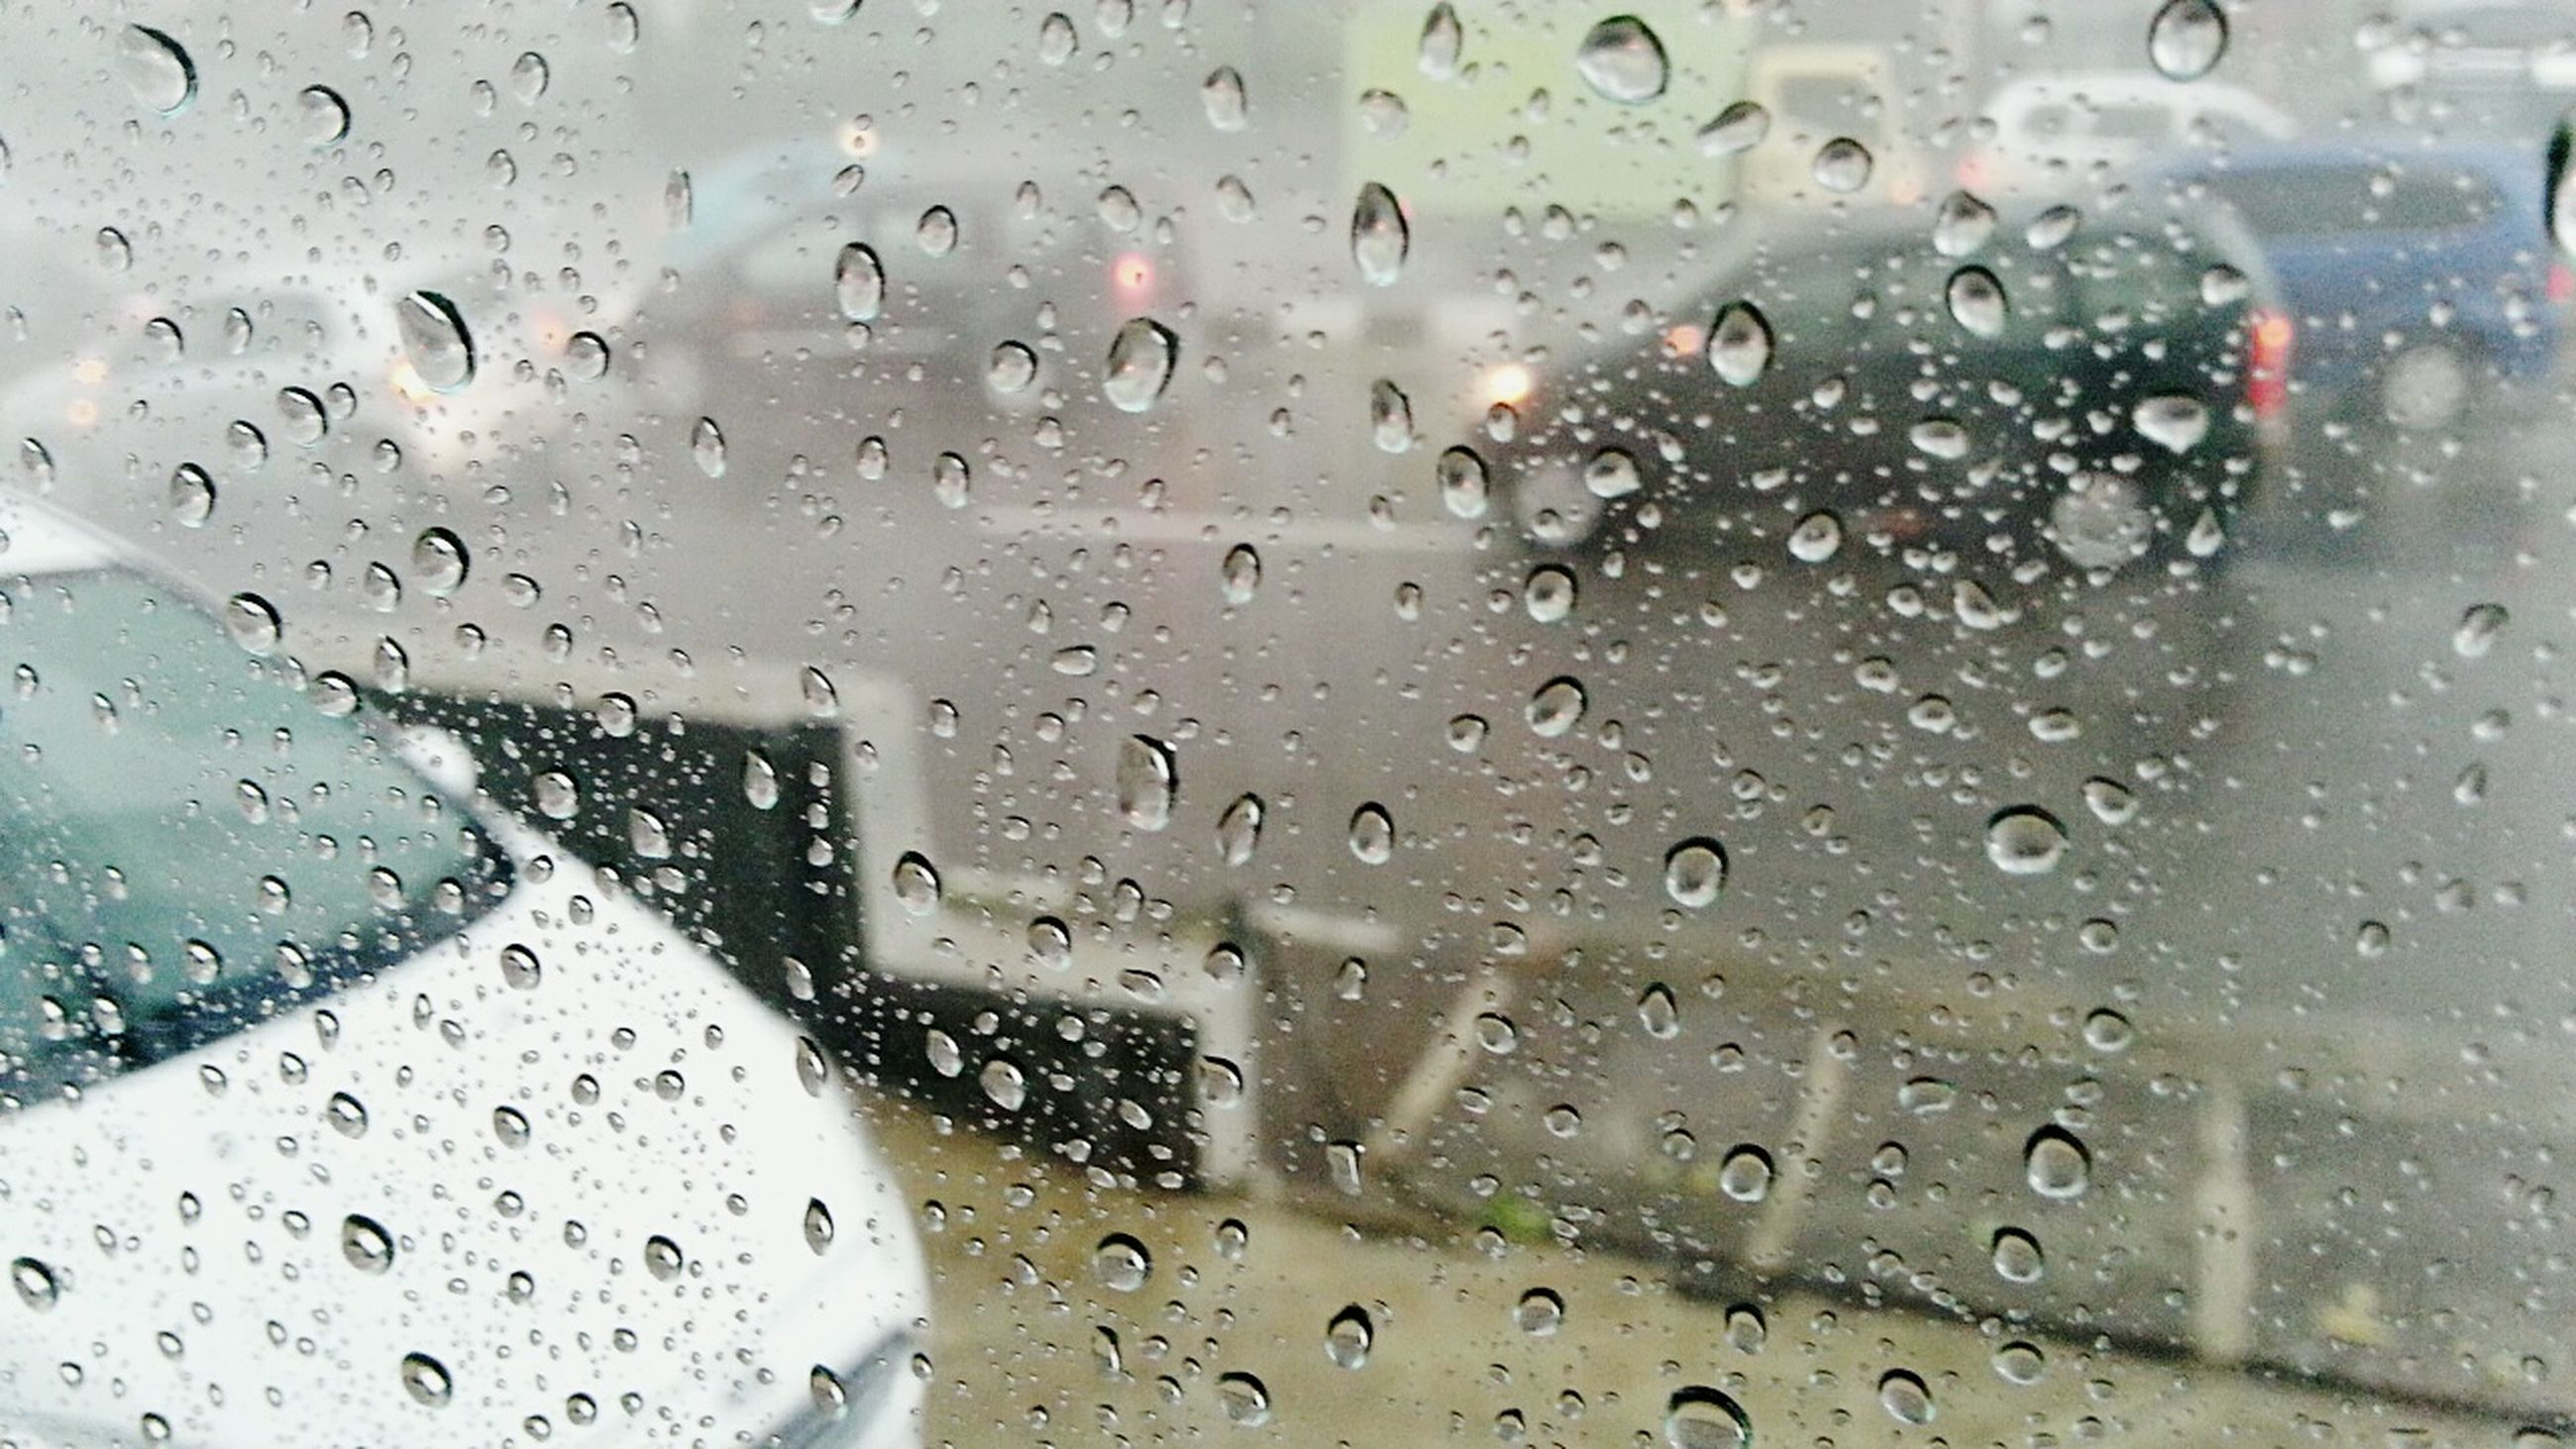 drop, wet, window, indoors, rain, glass - material, transparent, water, season, weather, raindrop, full frame, glass, backgrounds, vehicle interior, monsoon, transportation, car, close-up, focus on foreground